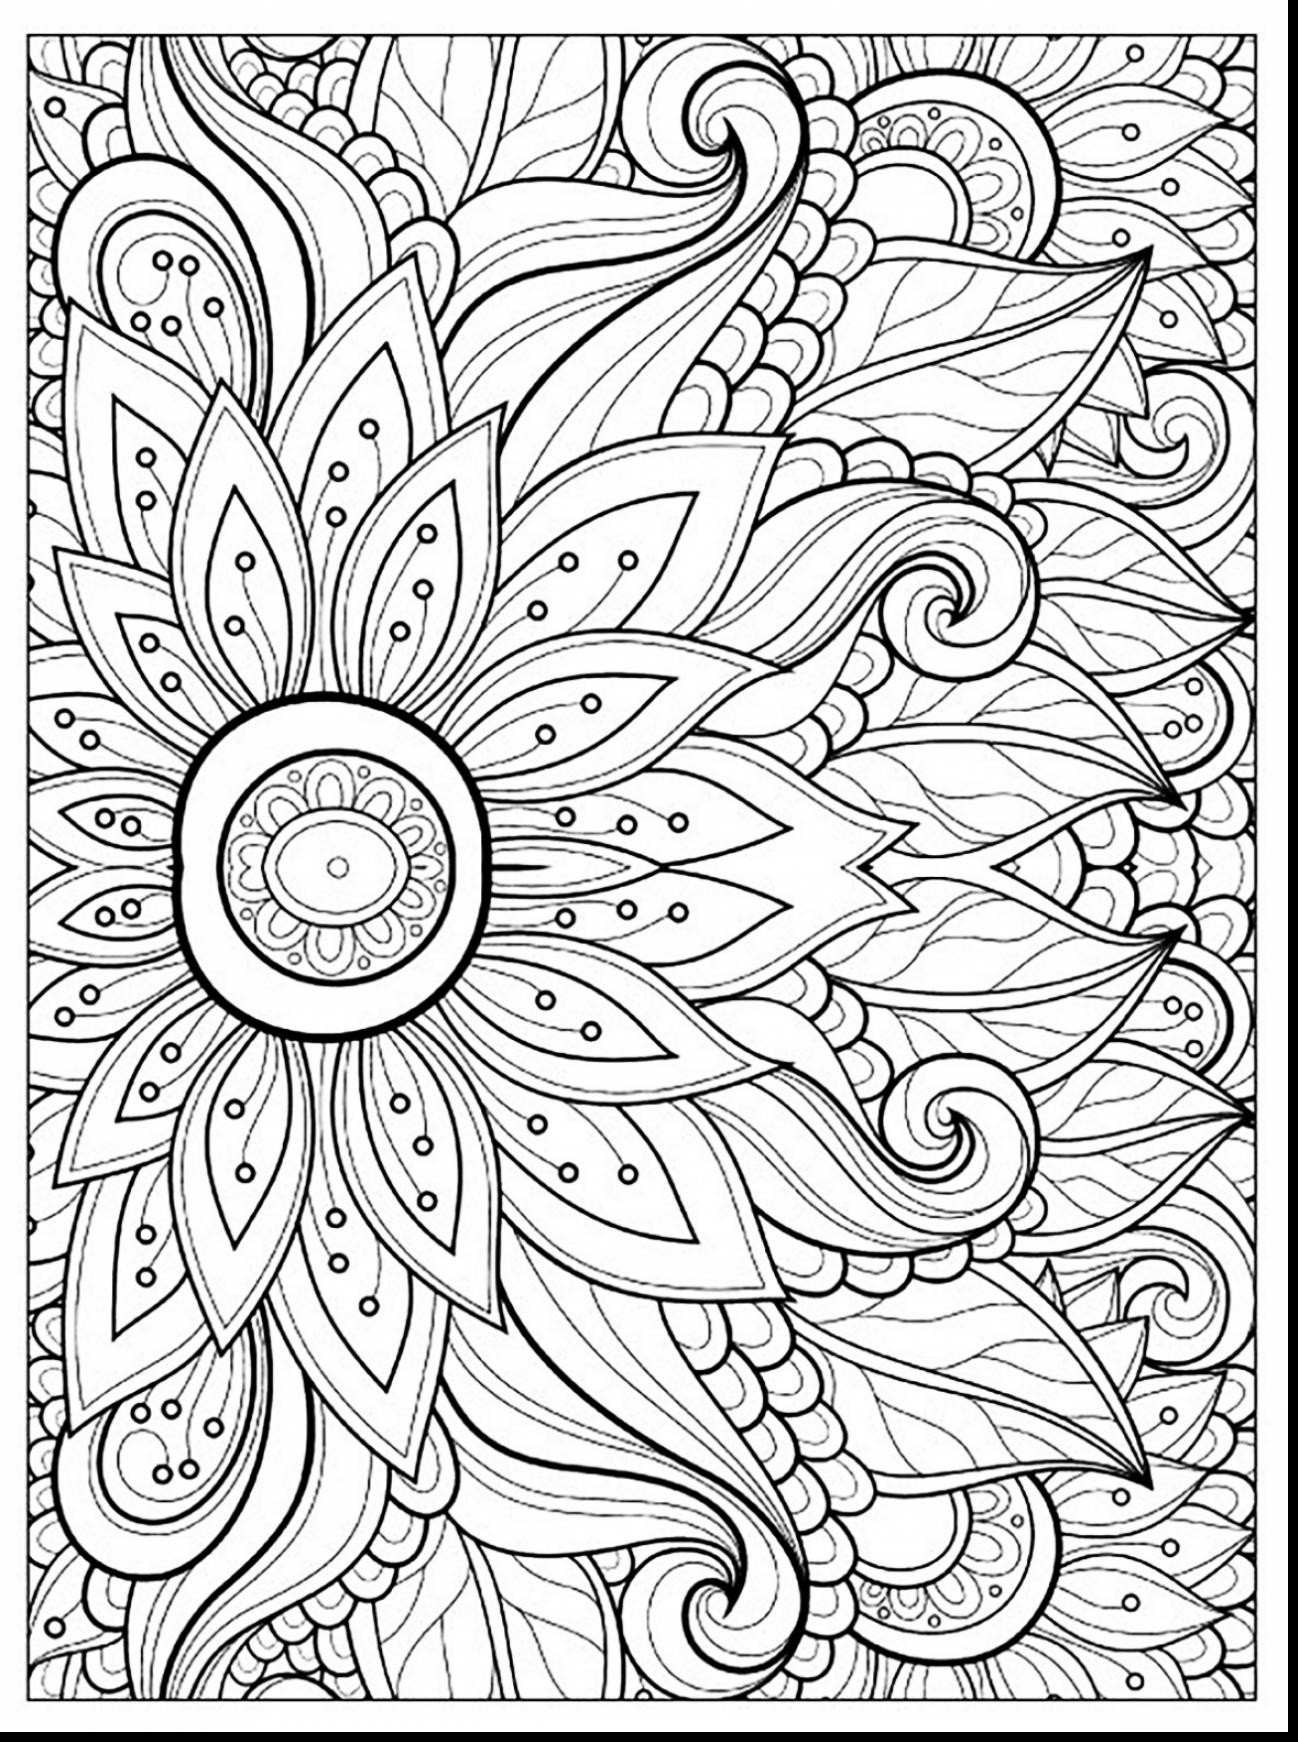 flowers that last long in a vase of abstract coloring pages for adults fresh cool vases flower vase with abstract coloring pages for adults fresh cool vases flower vase coloring page pages flowers in a